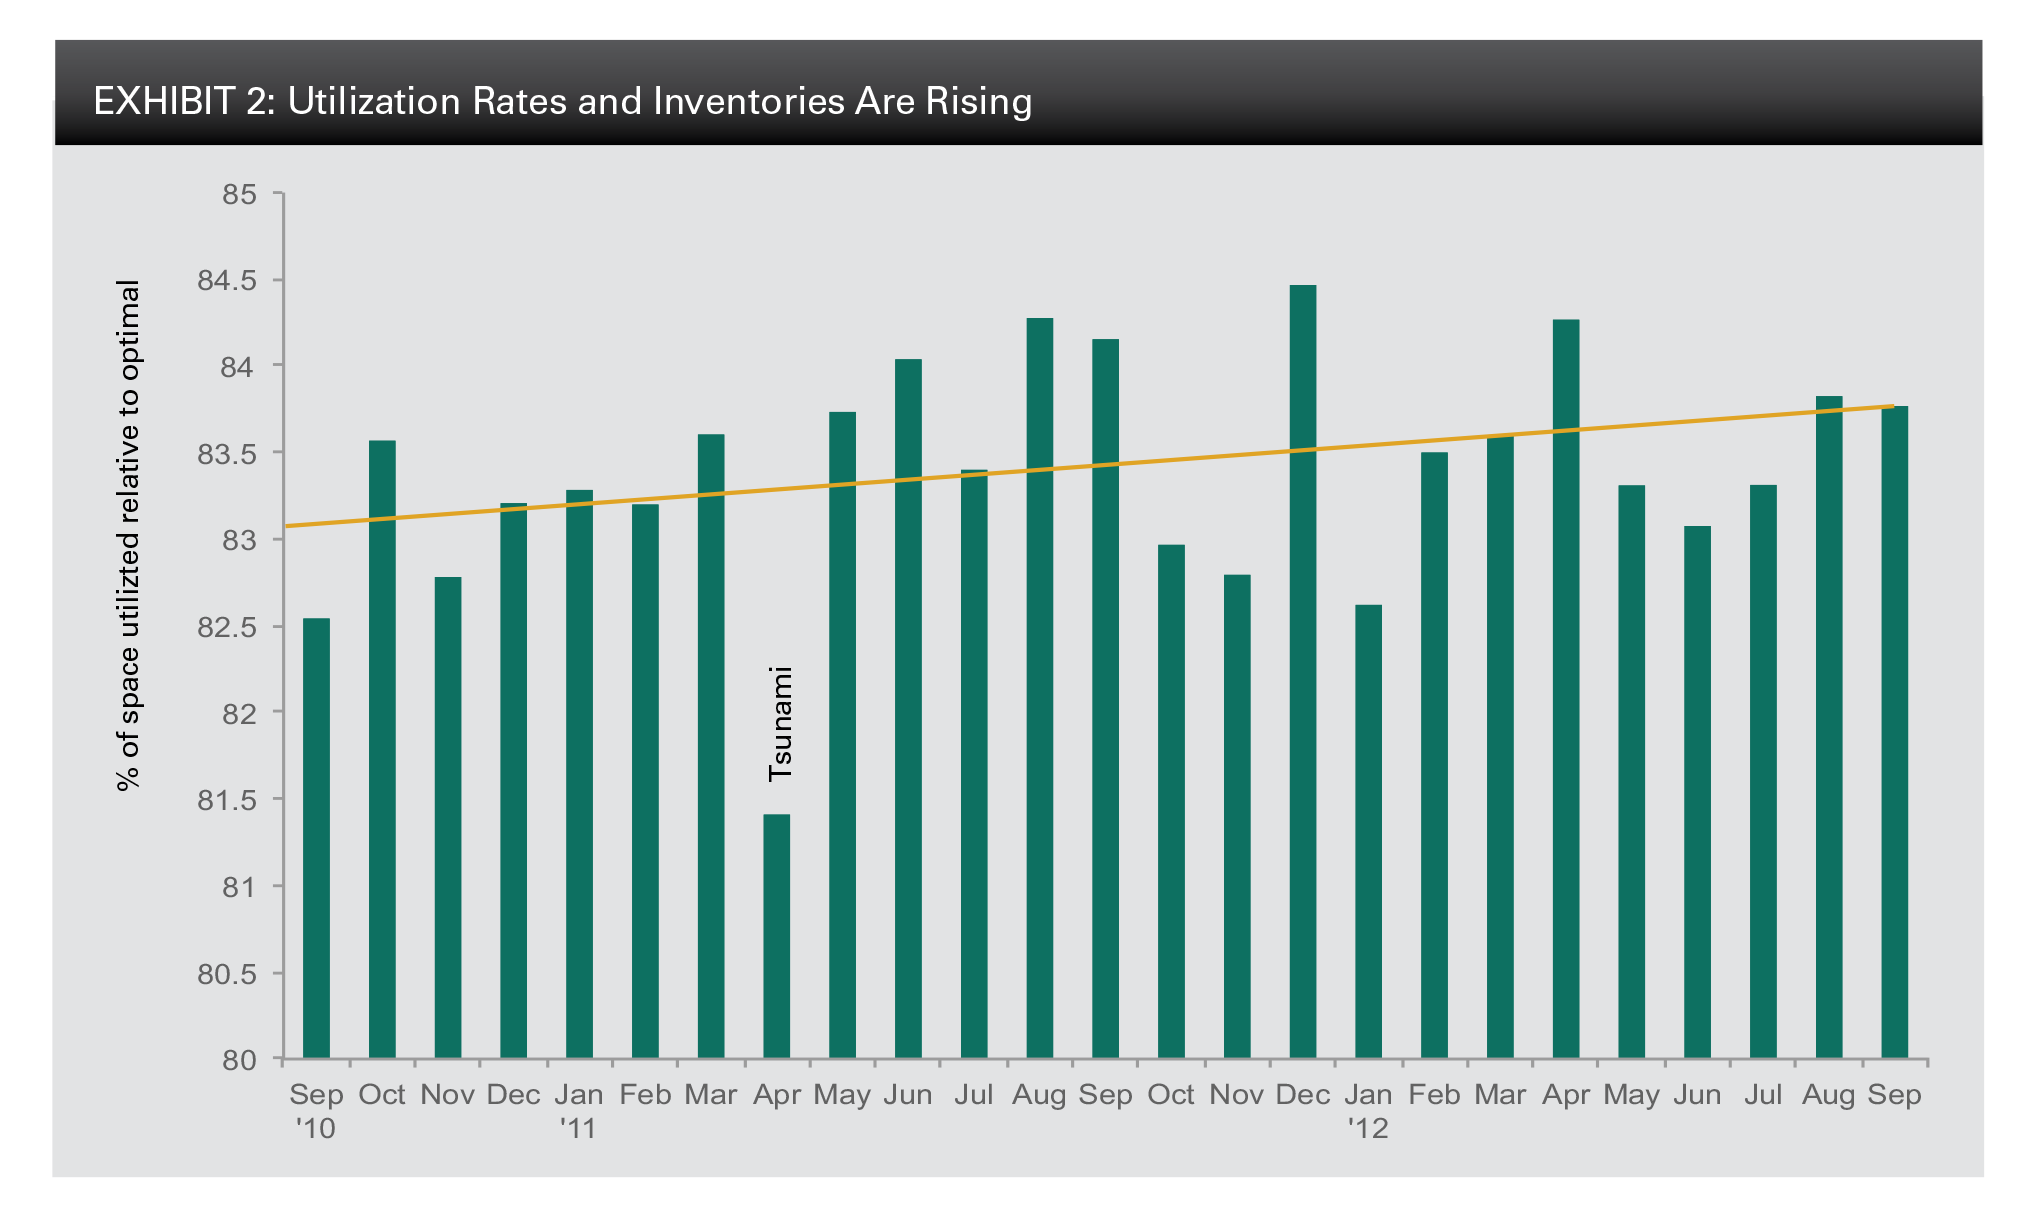 EXHIBIT 2: Utilization Rates and Inventories Are Rising